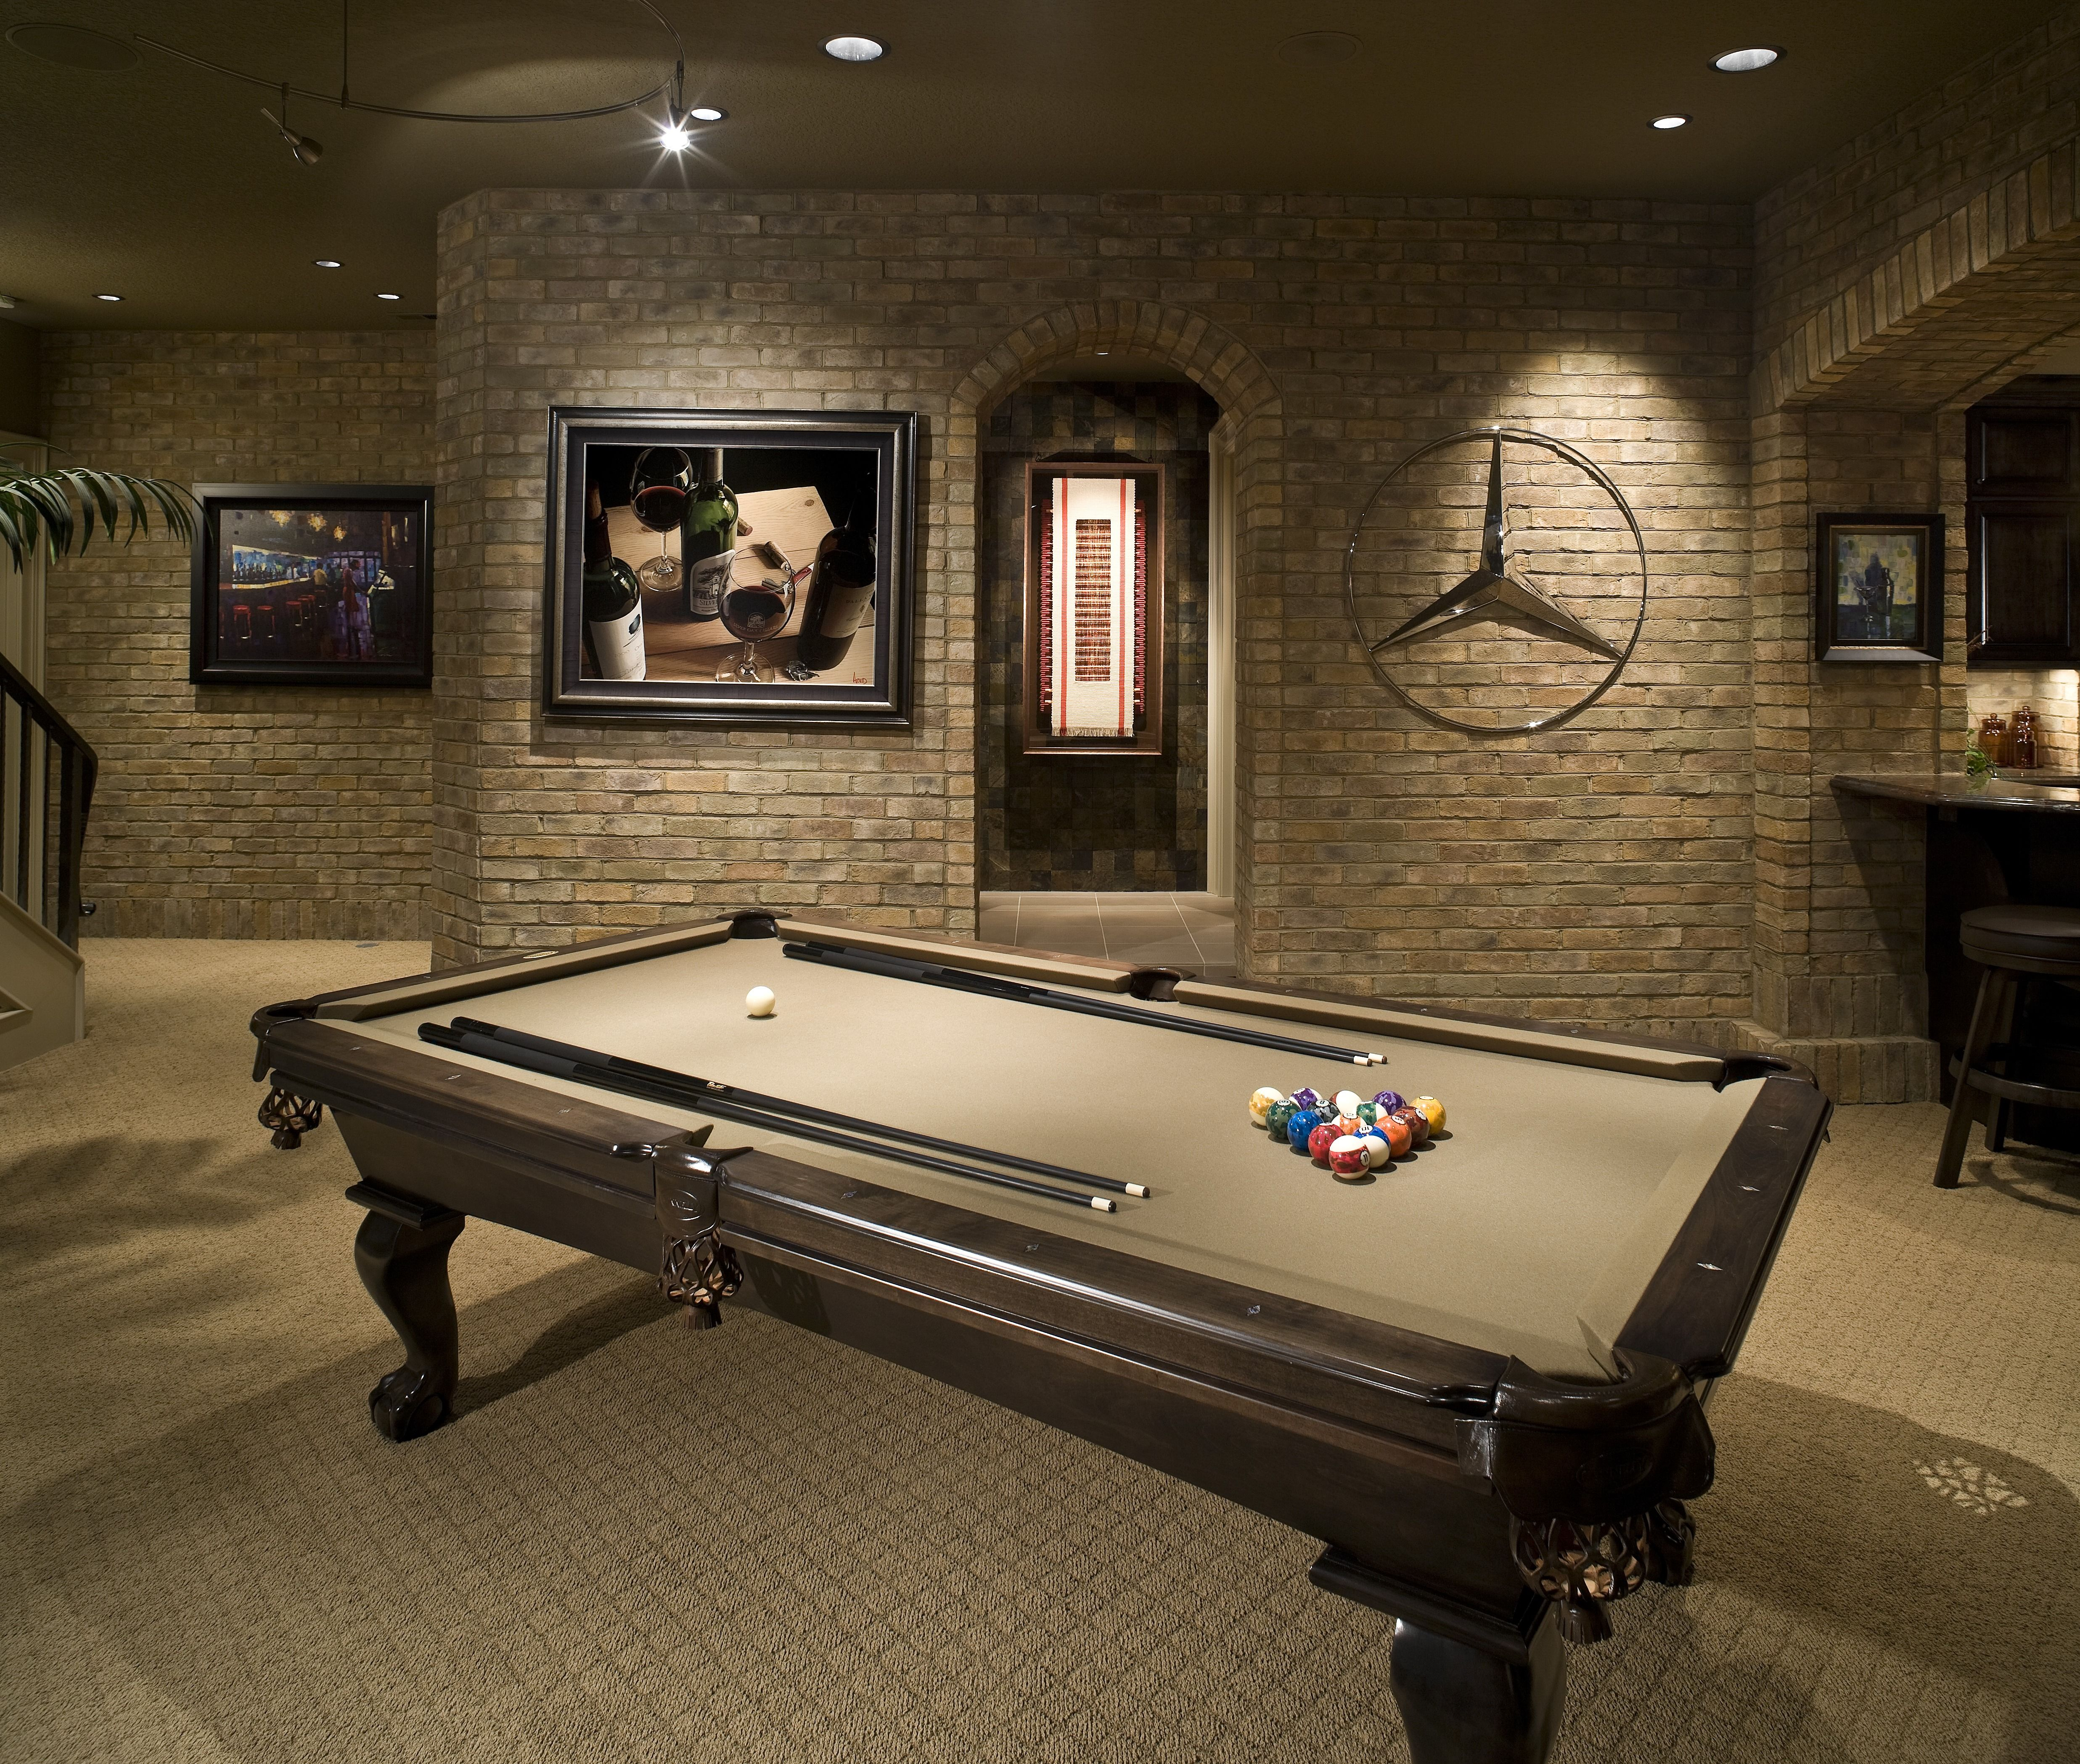 Luxury Man Cave Game Room Bar With Images: 10 Must-Have Items For The Ultimate Man Cave